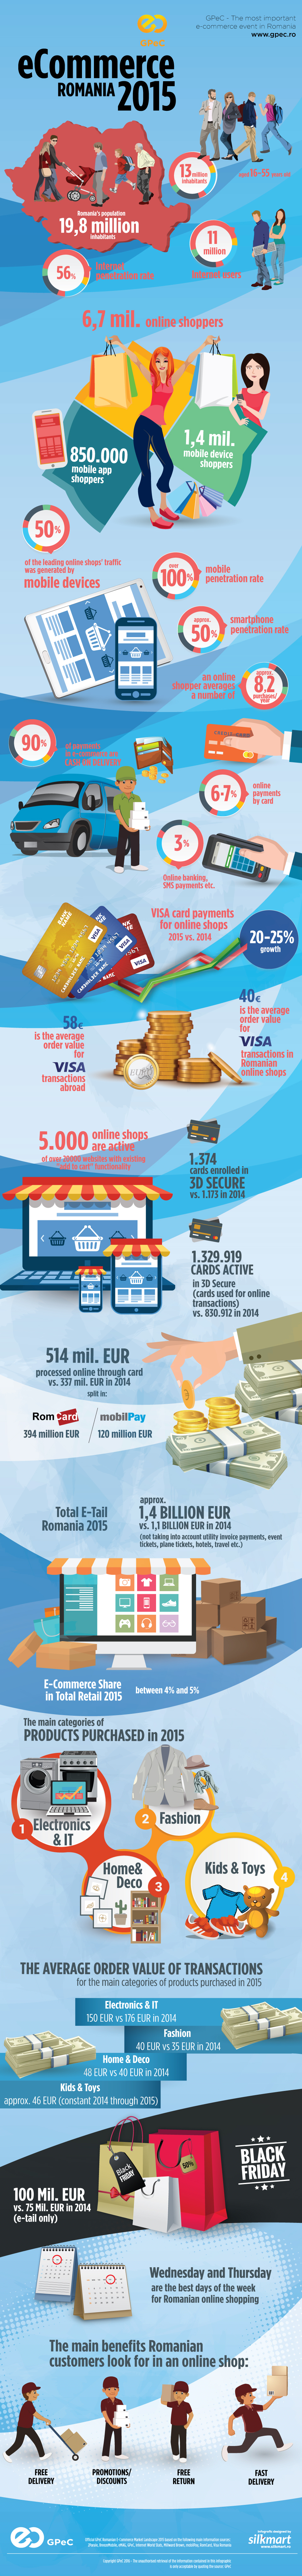 Romanian e-commerce market value 2015